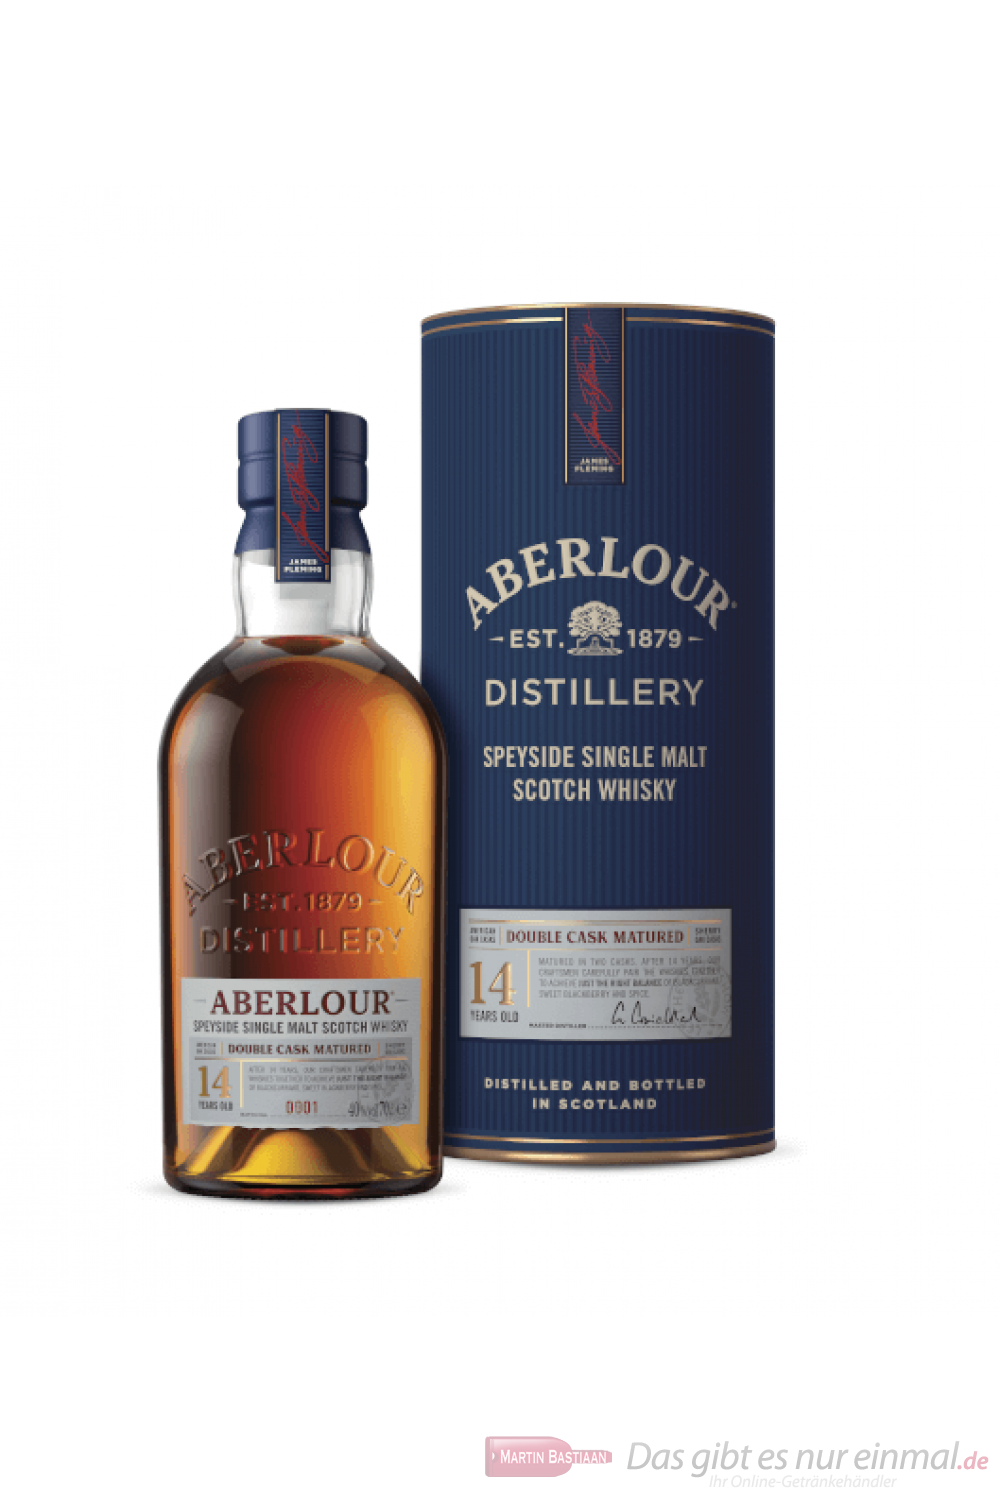 Aberlour 14 Years Double Cask Matured Single Malt Scotch Whisky 0,7l